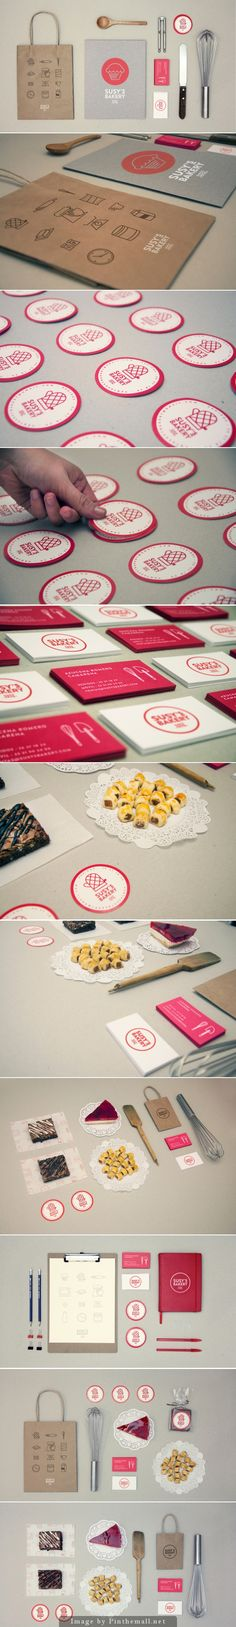 Susy's Bakery. Let's eat #identity #packaging #branding PD